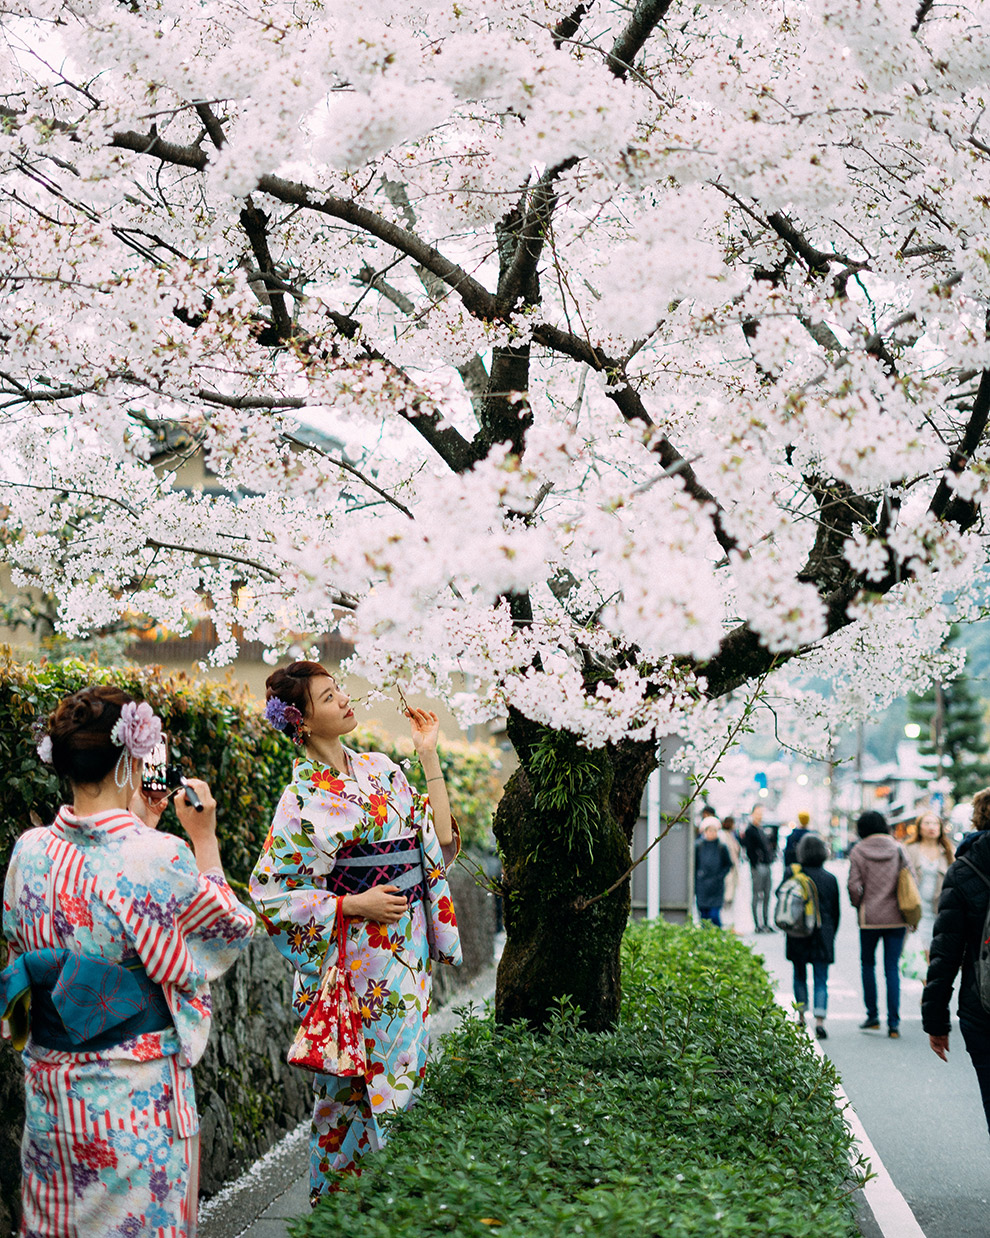 Local Japanese in traditional clothing under cherry blossom tree